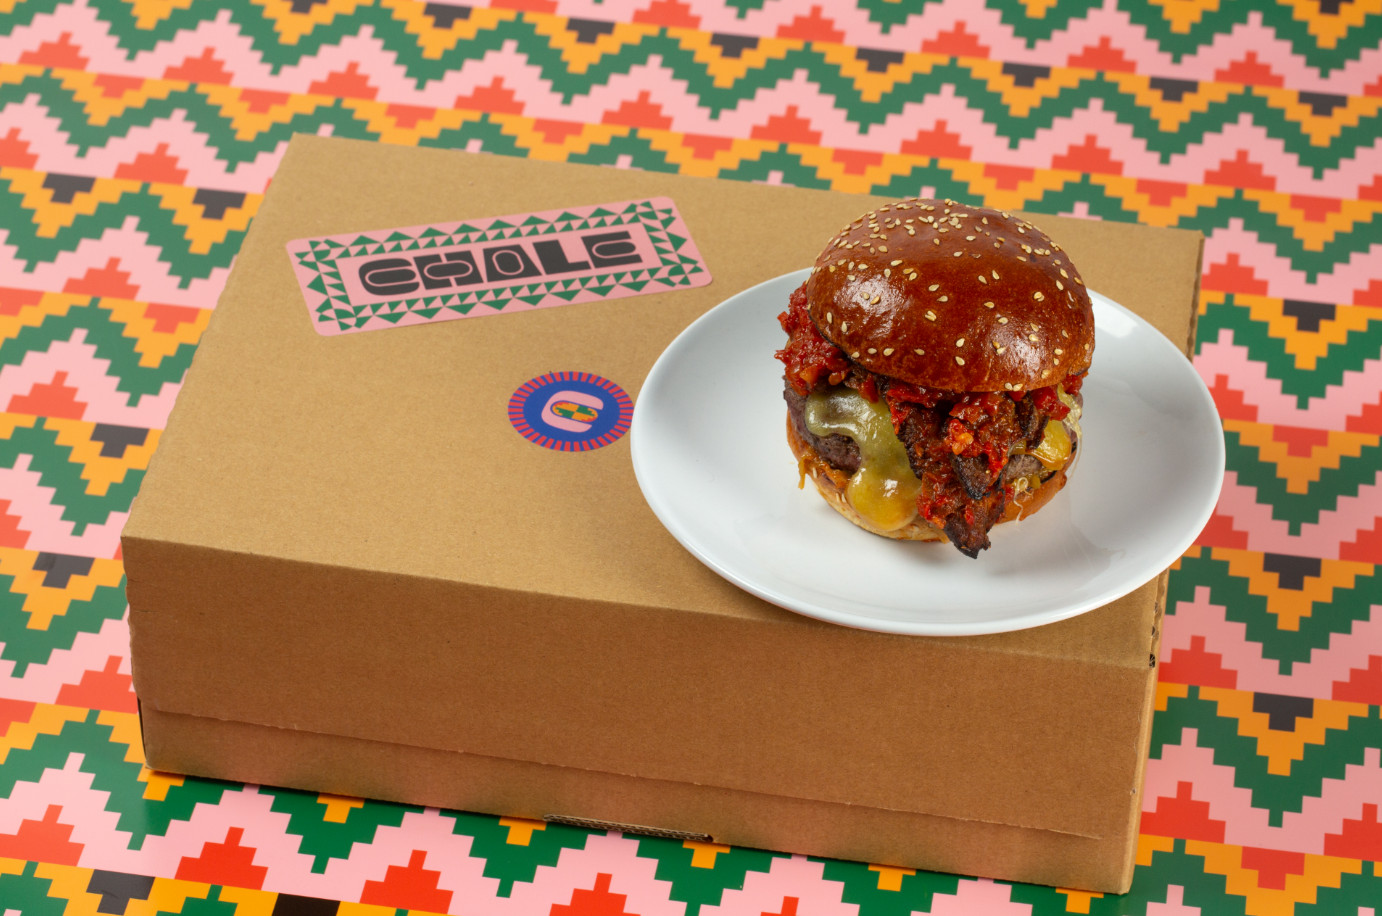 Black chefs develop the wahala burger to celebrate african cuisine